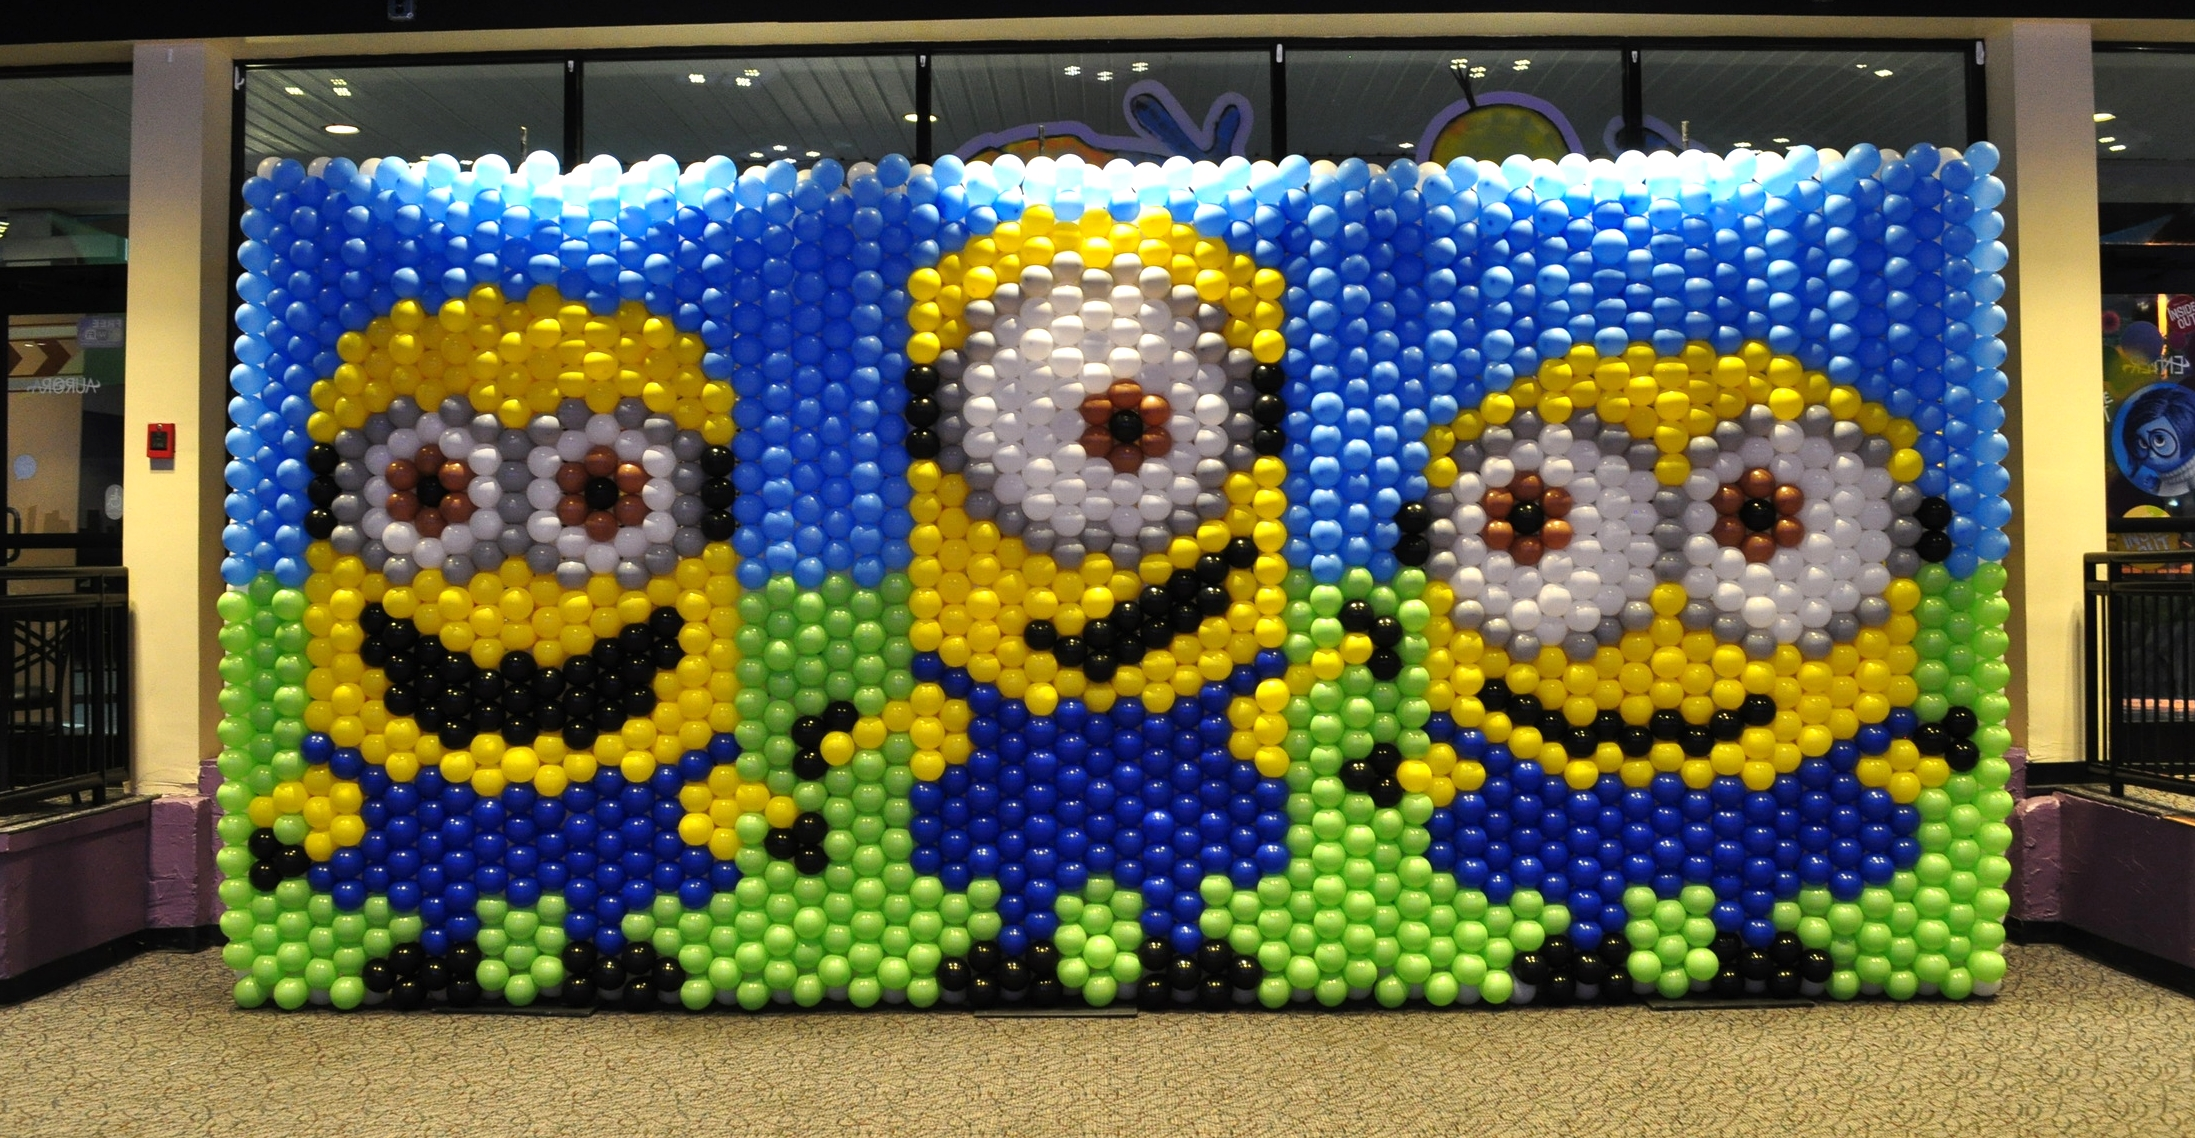 Minions movie premier at Aurora Cineplex balloon mural